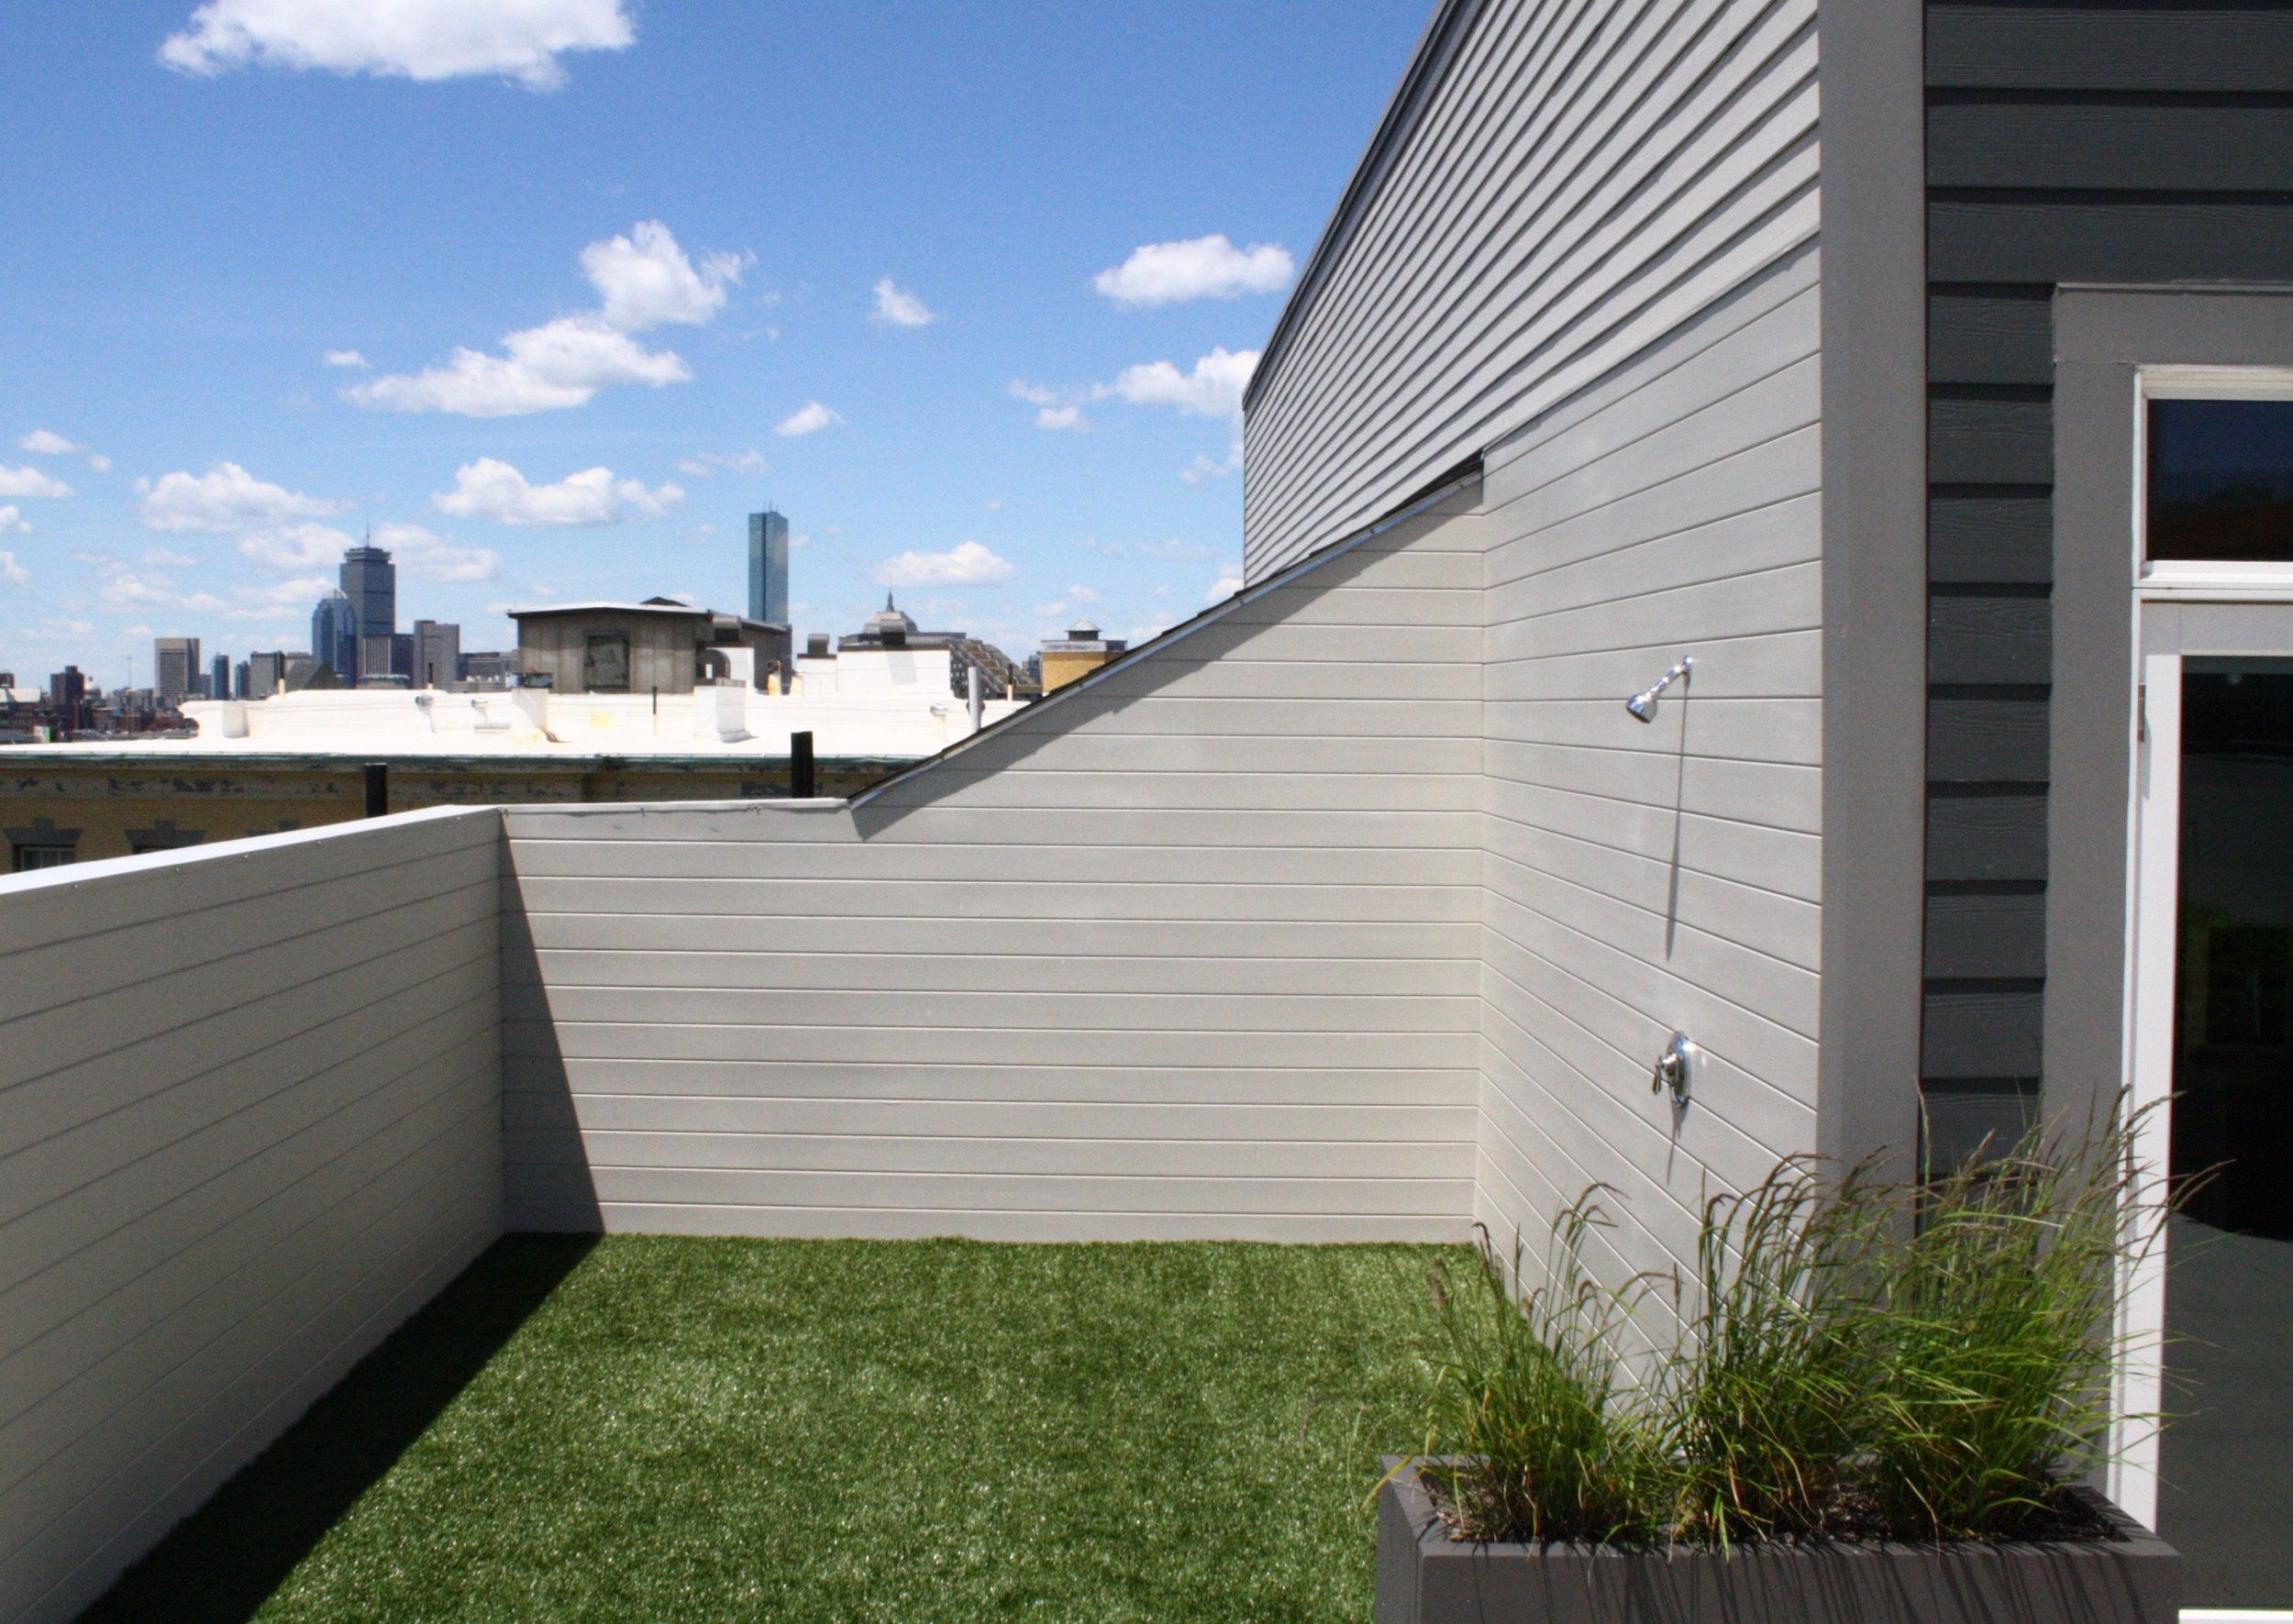 recover-green-roofs-rooftop-patio-east-boston-2015-24.jpg